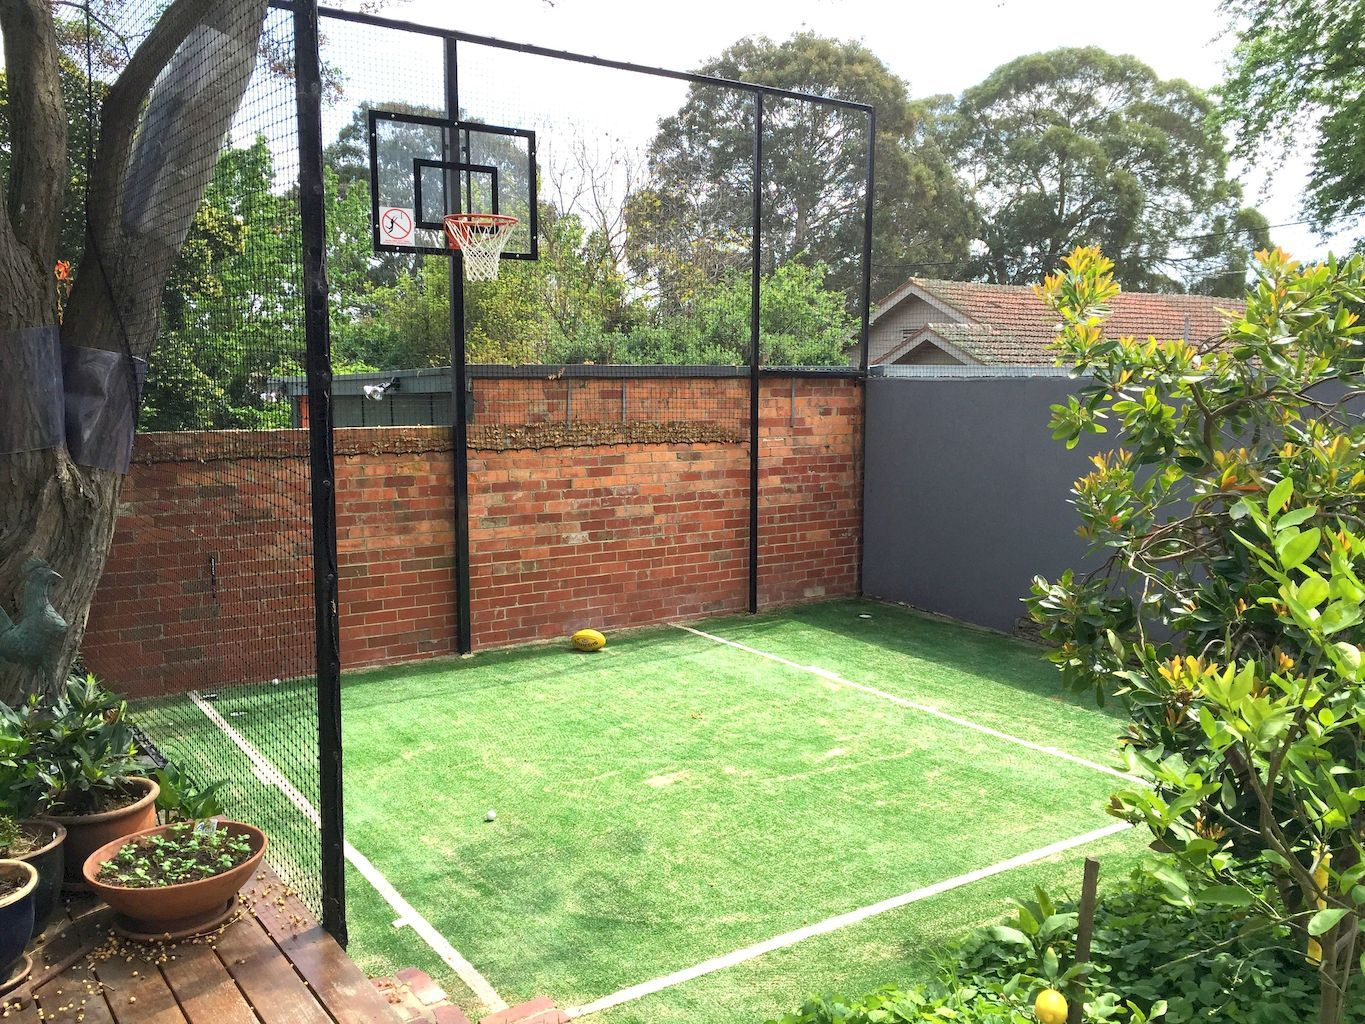 70 DIY Playground Project Ideas for Backyard Landscaping